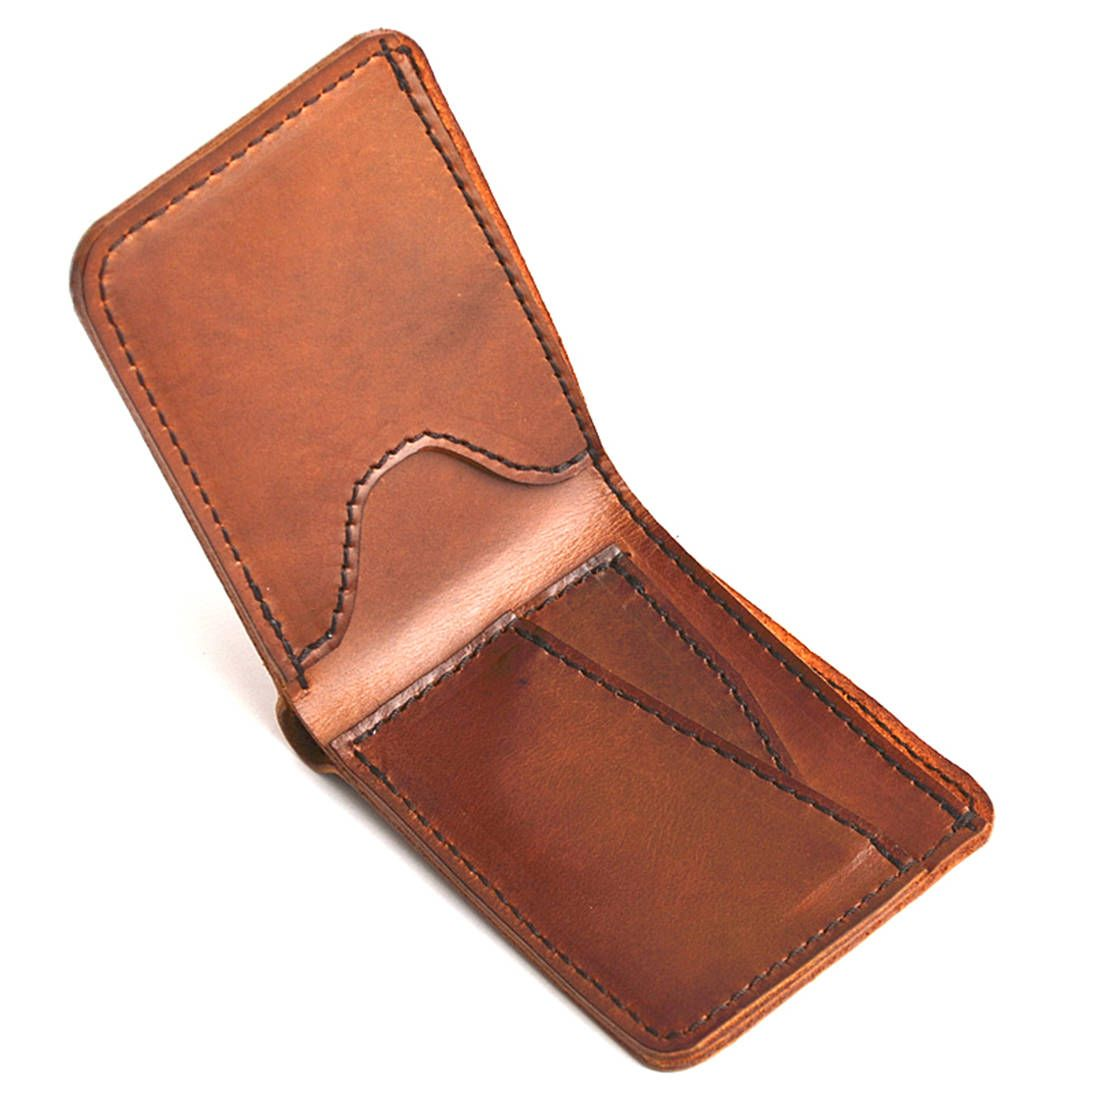 3ceb8935c Slim Mens Leather Wallet, Brown & Black Leather Bifold Wallet for ...